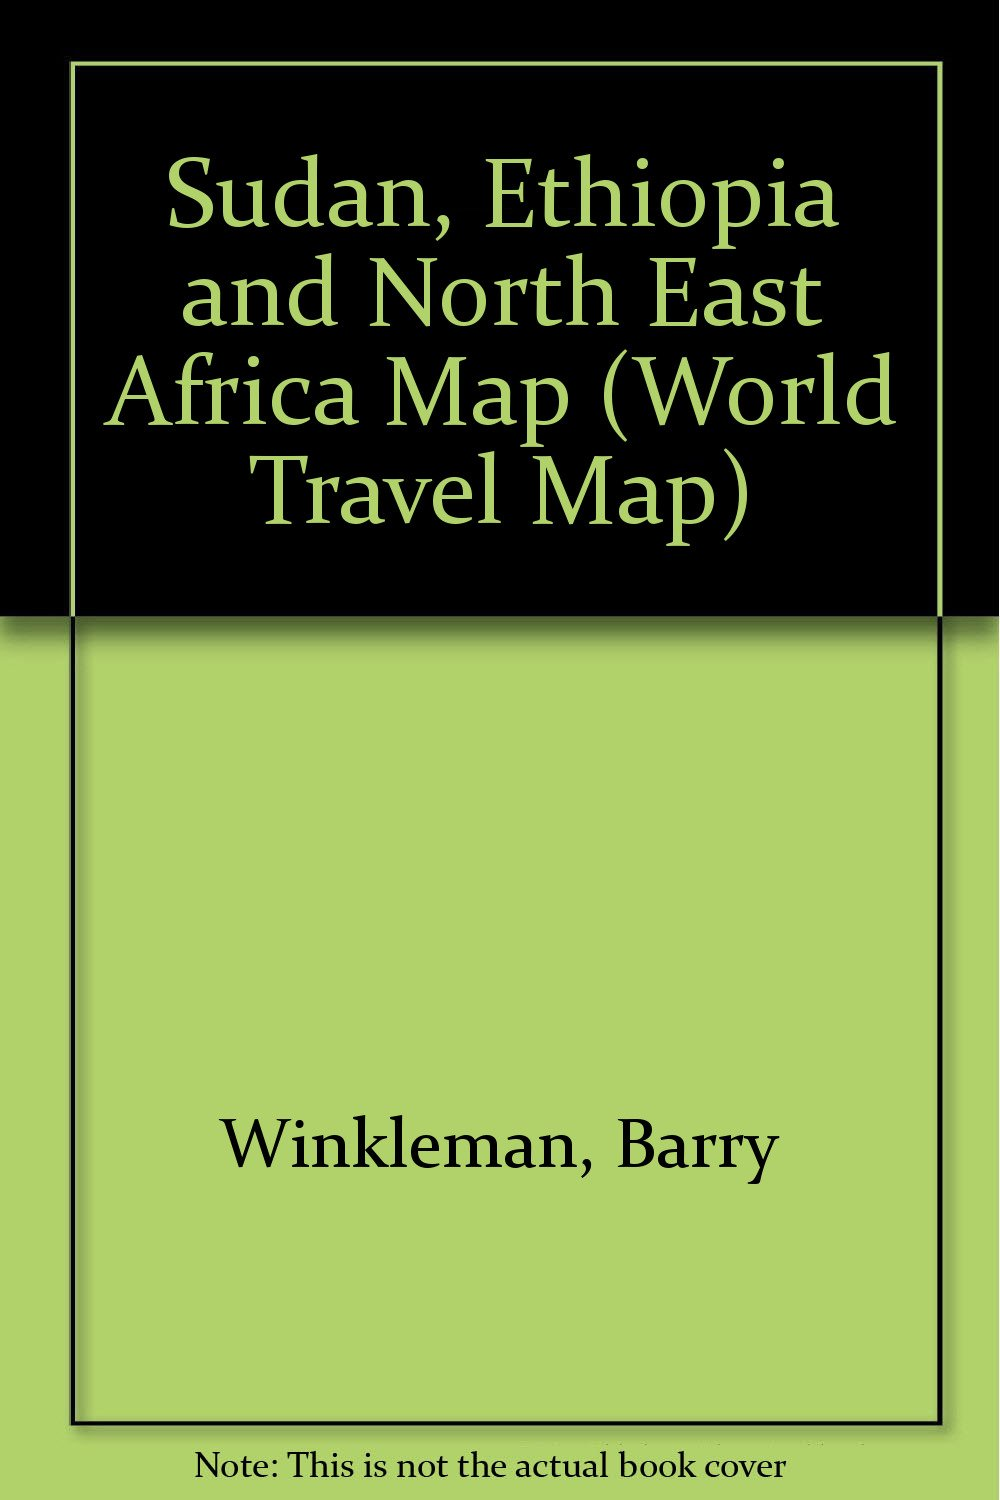 Sudan, Ethiopia and North East Africa Map (World Travel Map)